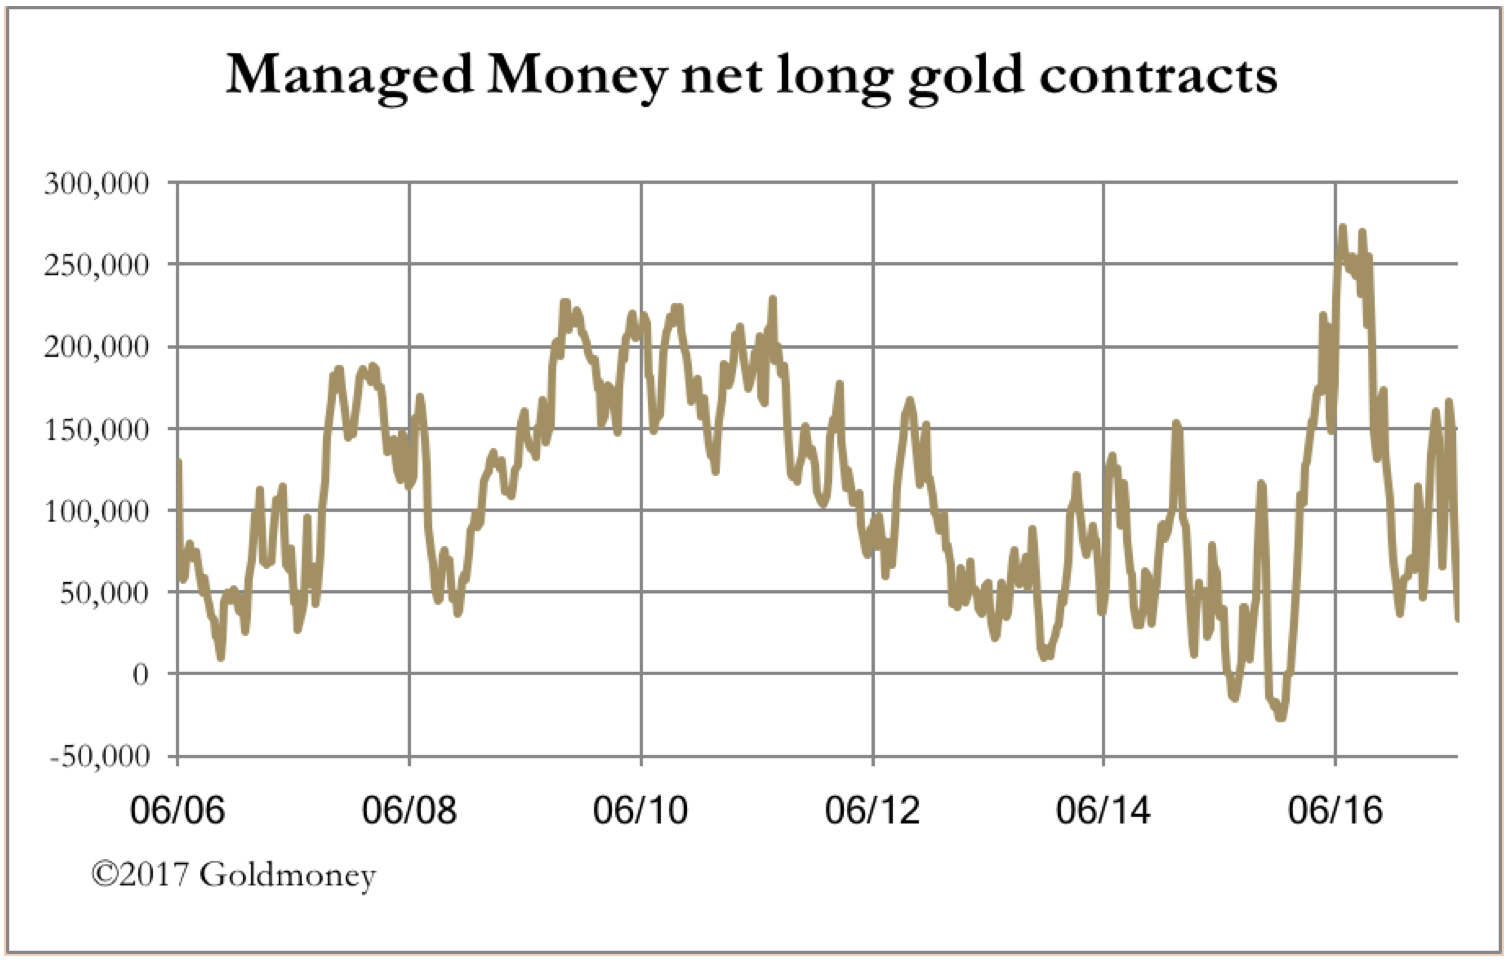 net long gold contracts june 2017